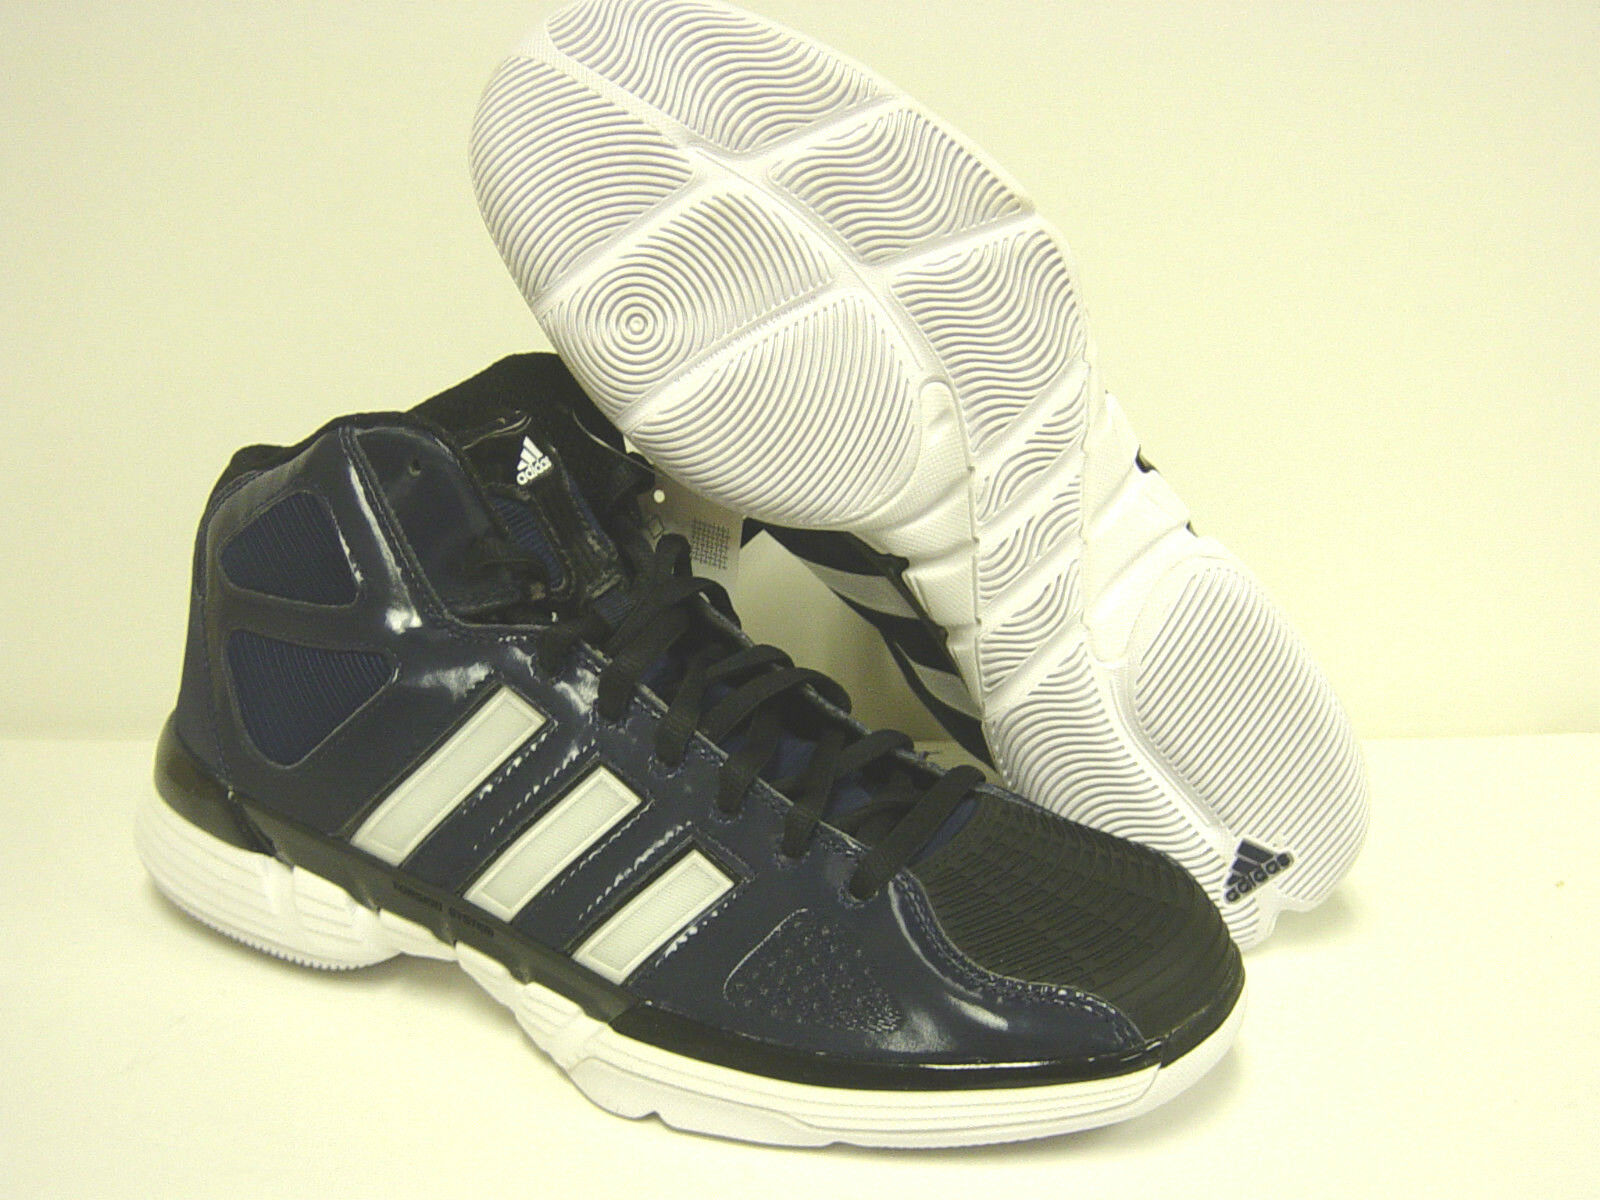 NEW Mens ADIDAS Pro Model 0 G21007 Indigo Blue White Basketball Sneakers Shoes The latest discount shoes for men and women